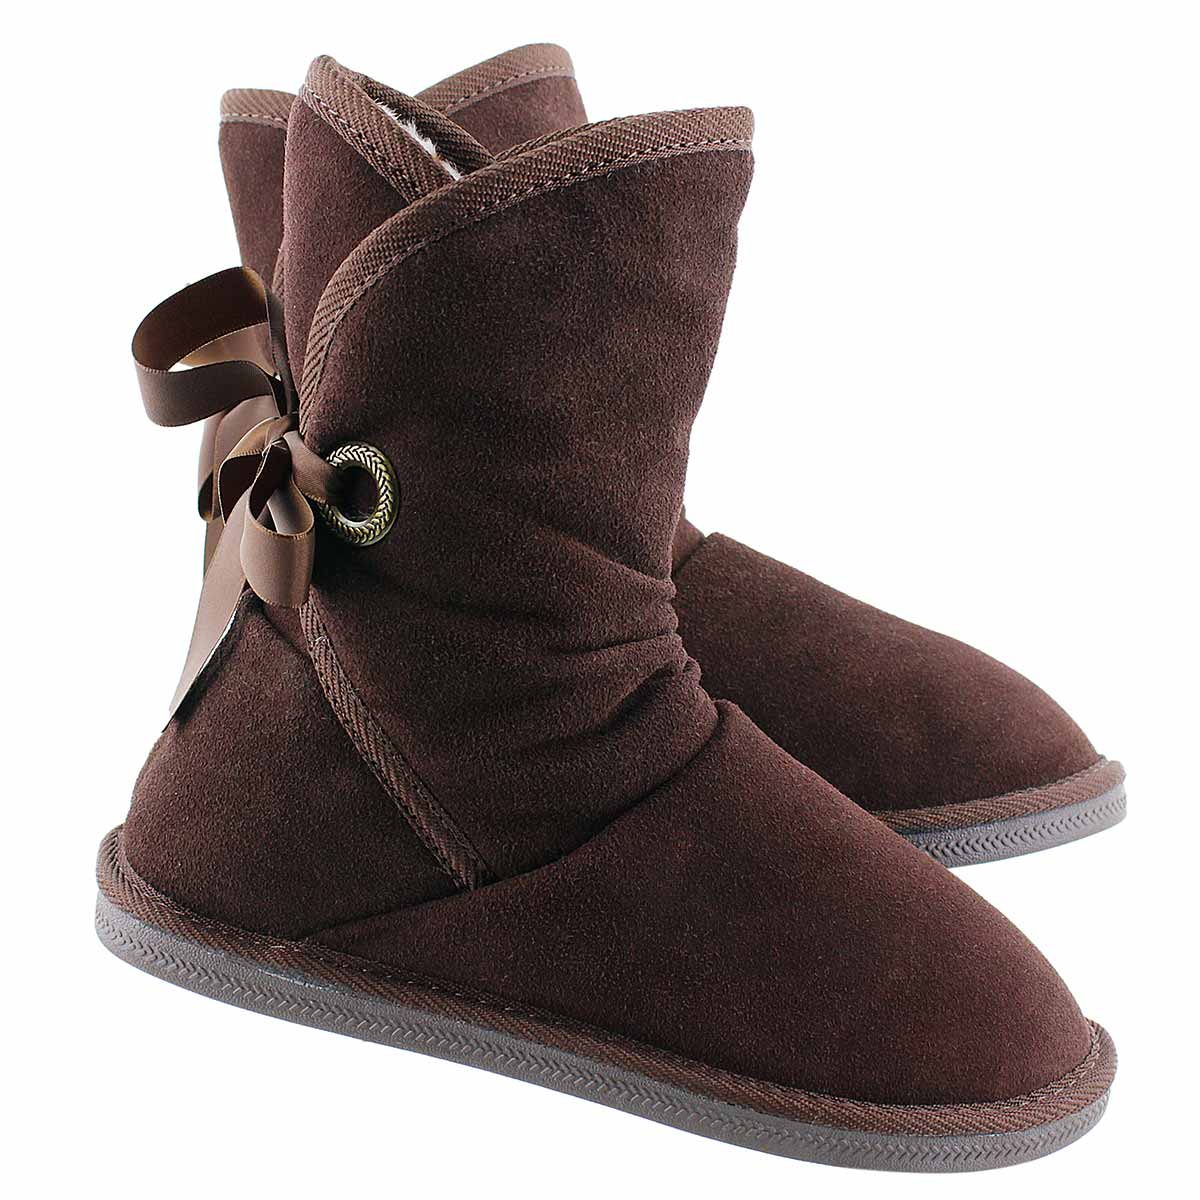 Lds Ribbon 2 choc brn suede lined boot